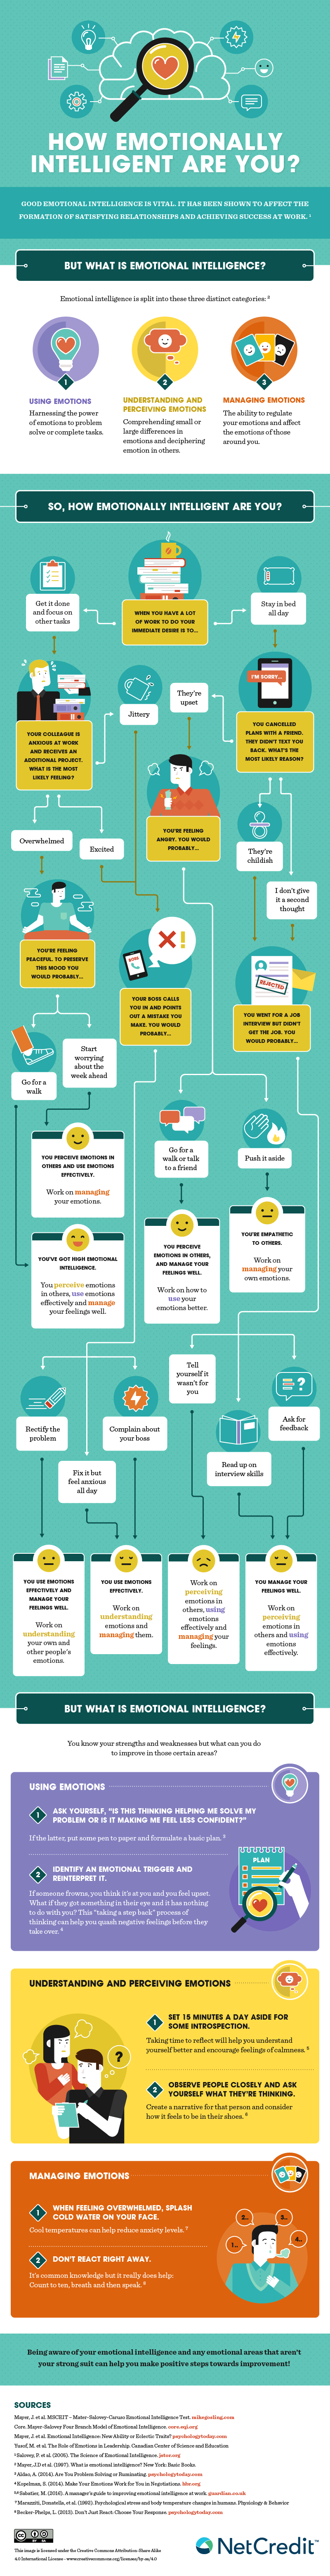 How To Improve Emotional Intelligence Infographic Emotional Intelligence Emotions Managing Emotions